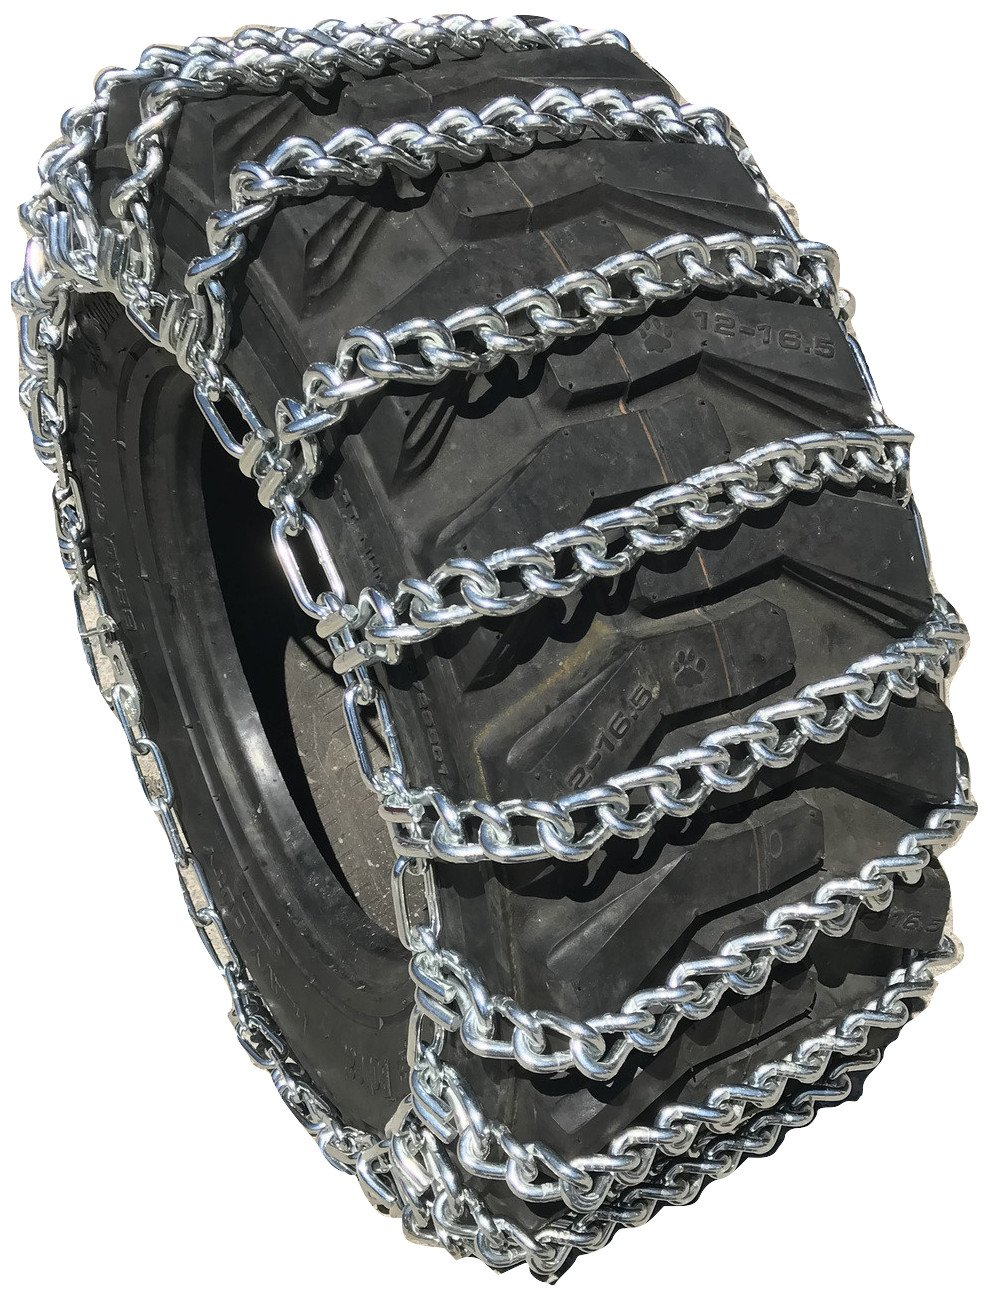 TireChain.com 15 19.5 15-19.5 Tractor Tire Chains Set of 2